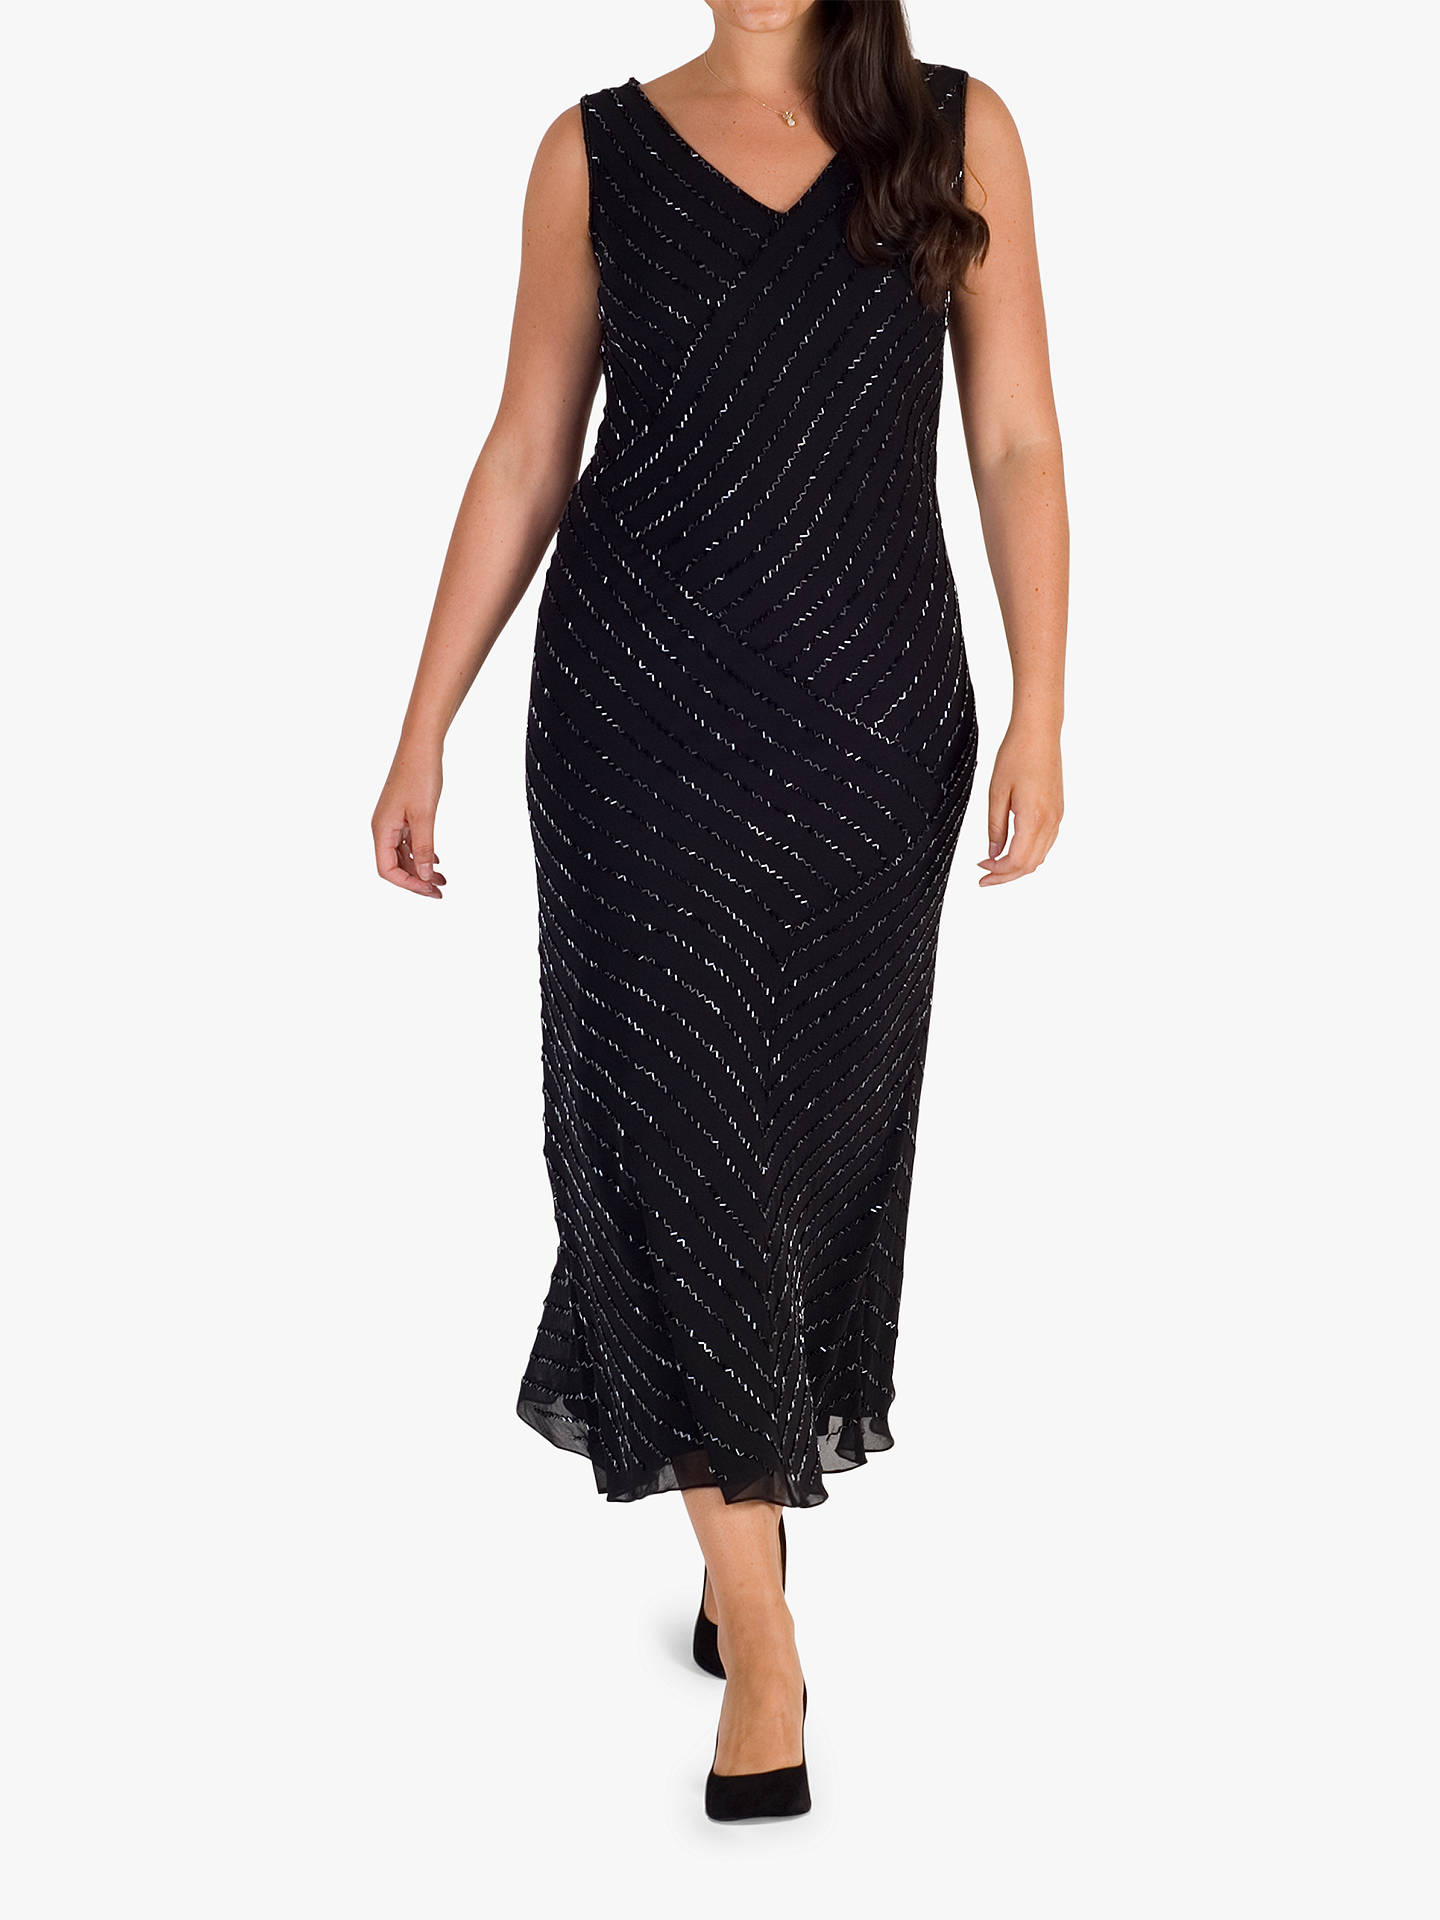 BuyChesca Diagonal Beaded Dress, Black, 12 Online at johnlewis.com